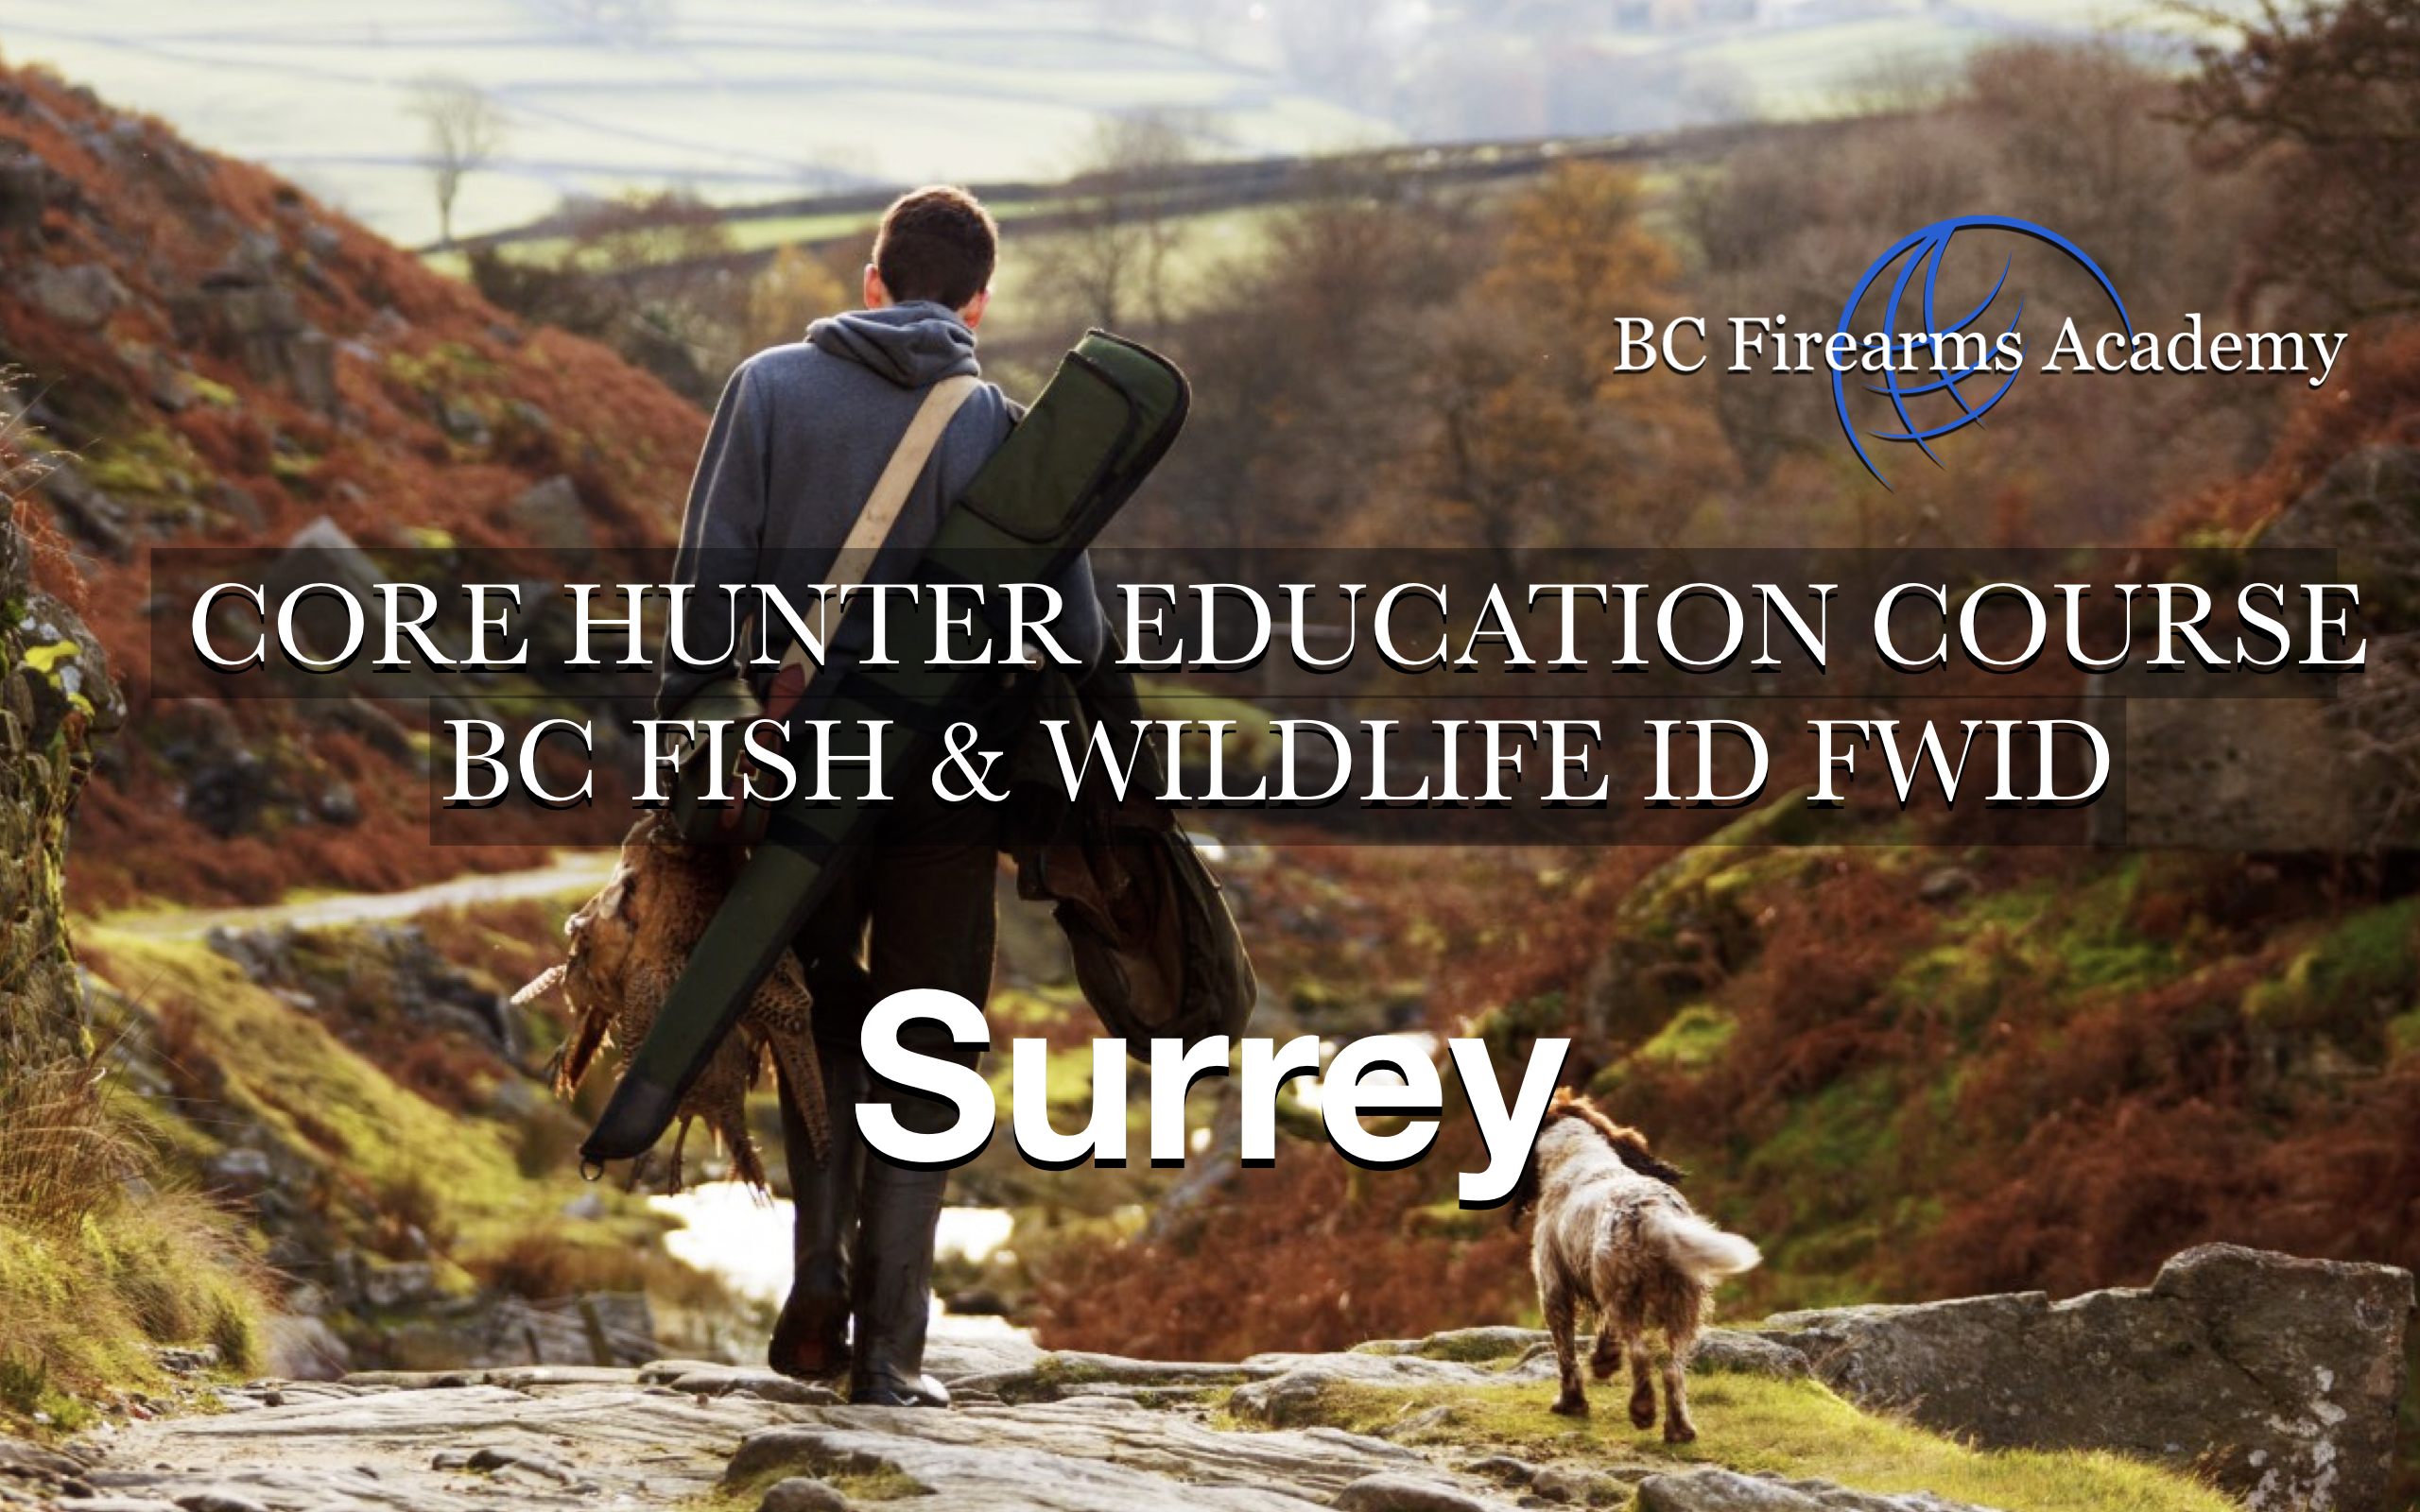 CORE Hunter Education Course -BC Fish & Wildlife ID- Surrey Saturday-Sunday Oct 24-25